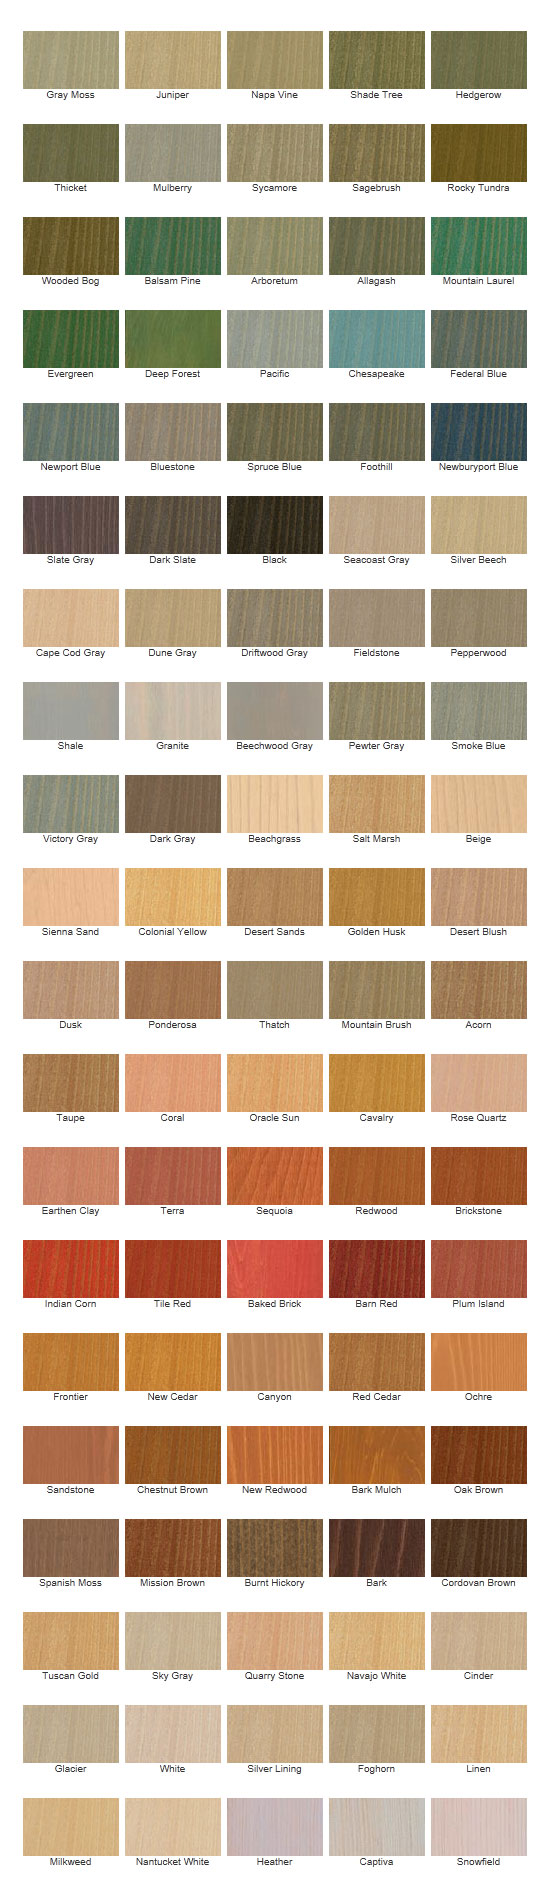 Cabot 0300 Series Semi-Transparent Deck & Siding Stain Colors